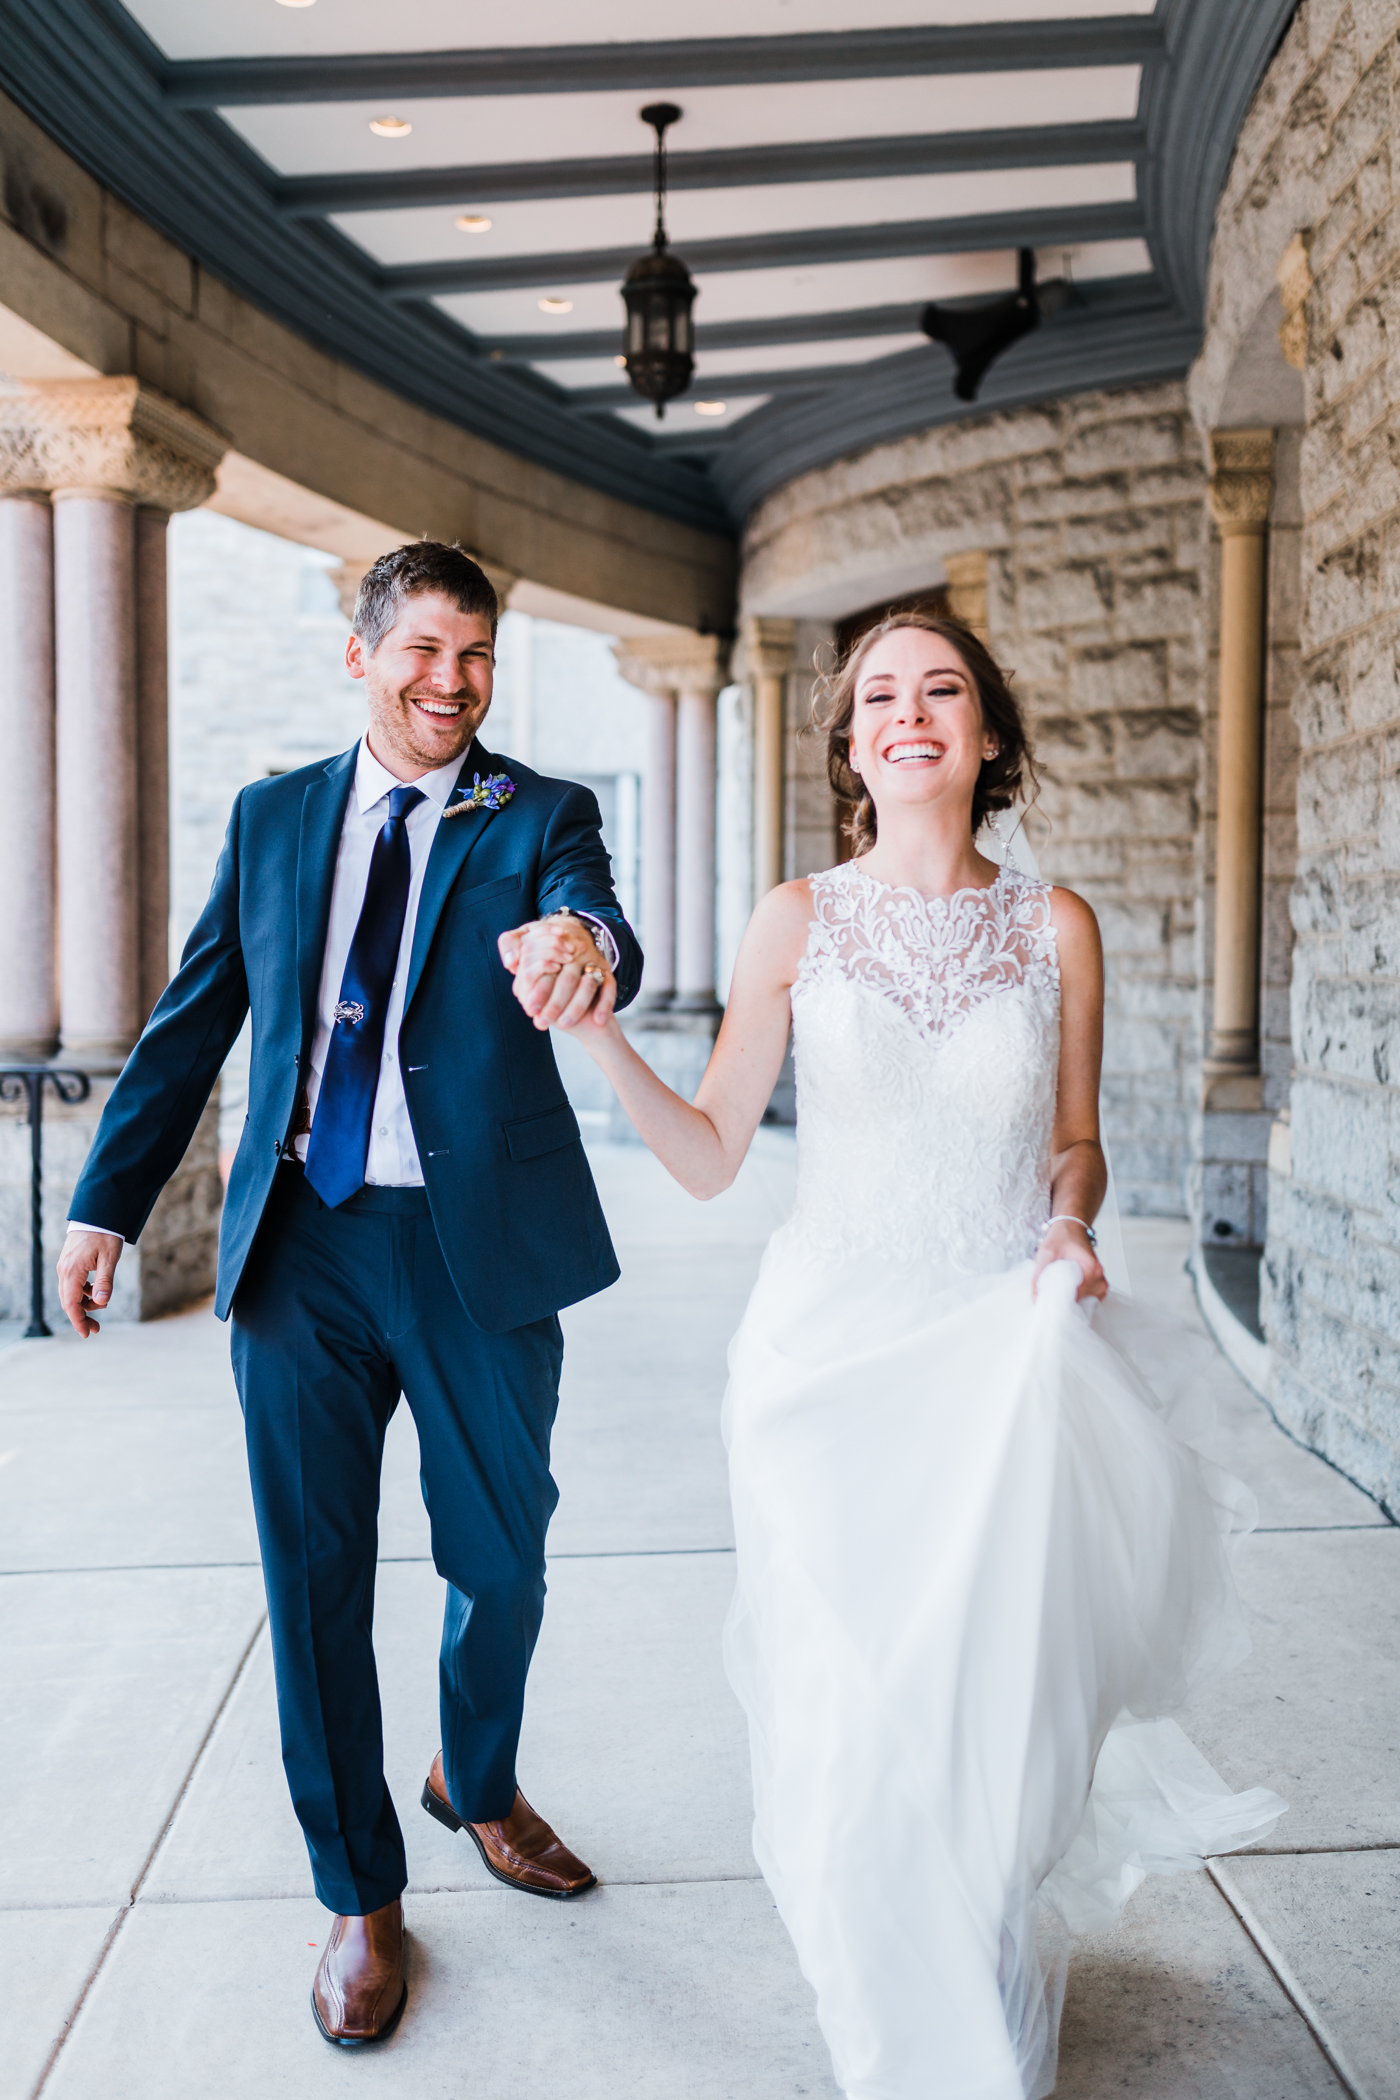 bride and groom laughing on their wedding day in baltimore md - best maryland wedding photographer and cinematographer